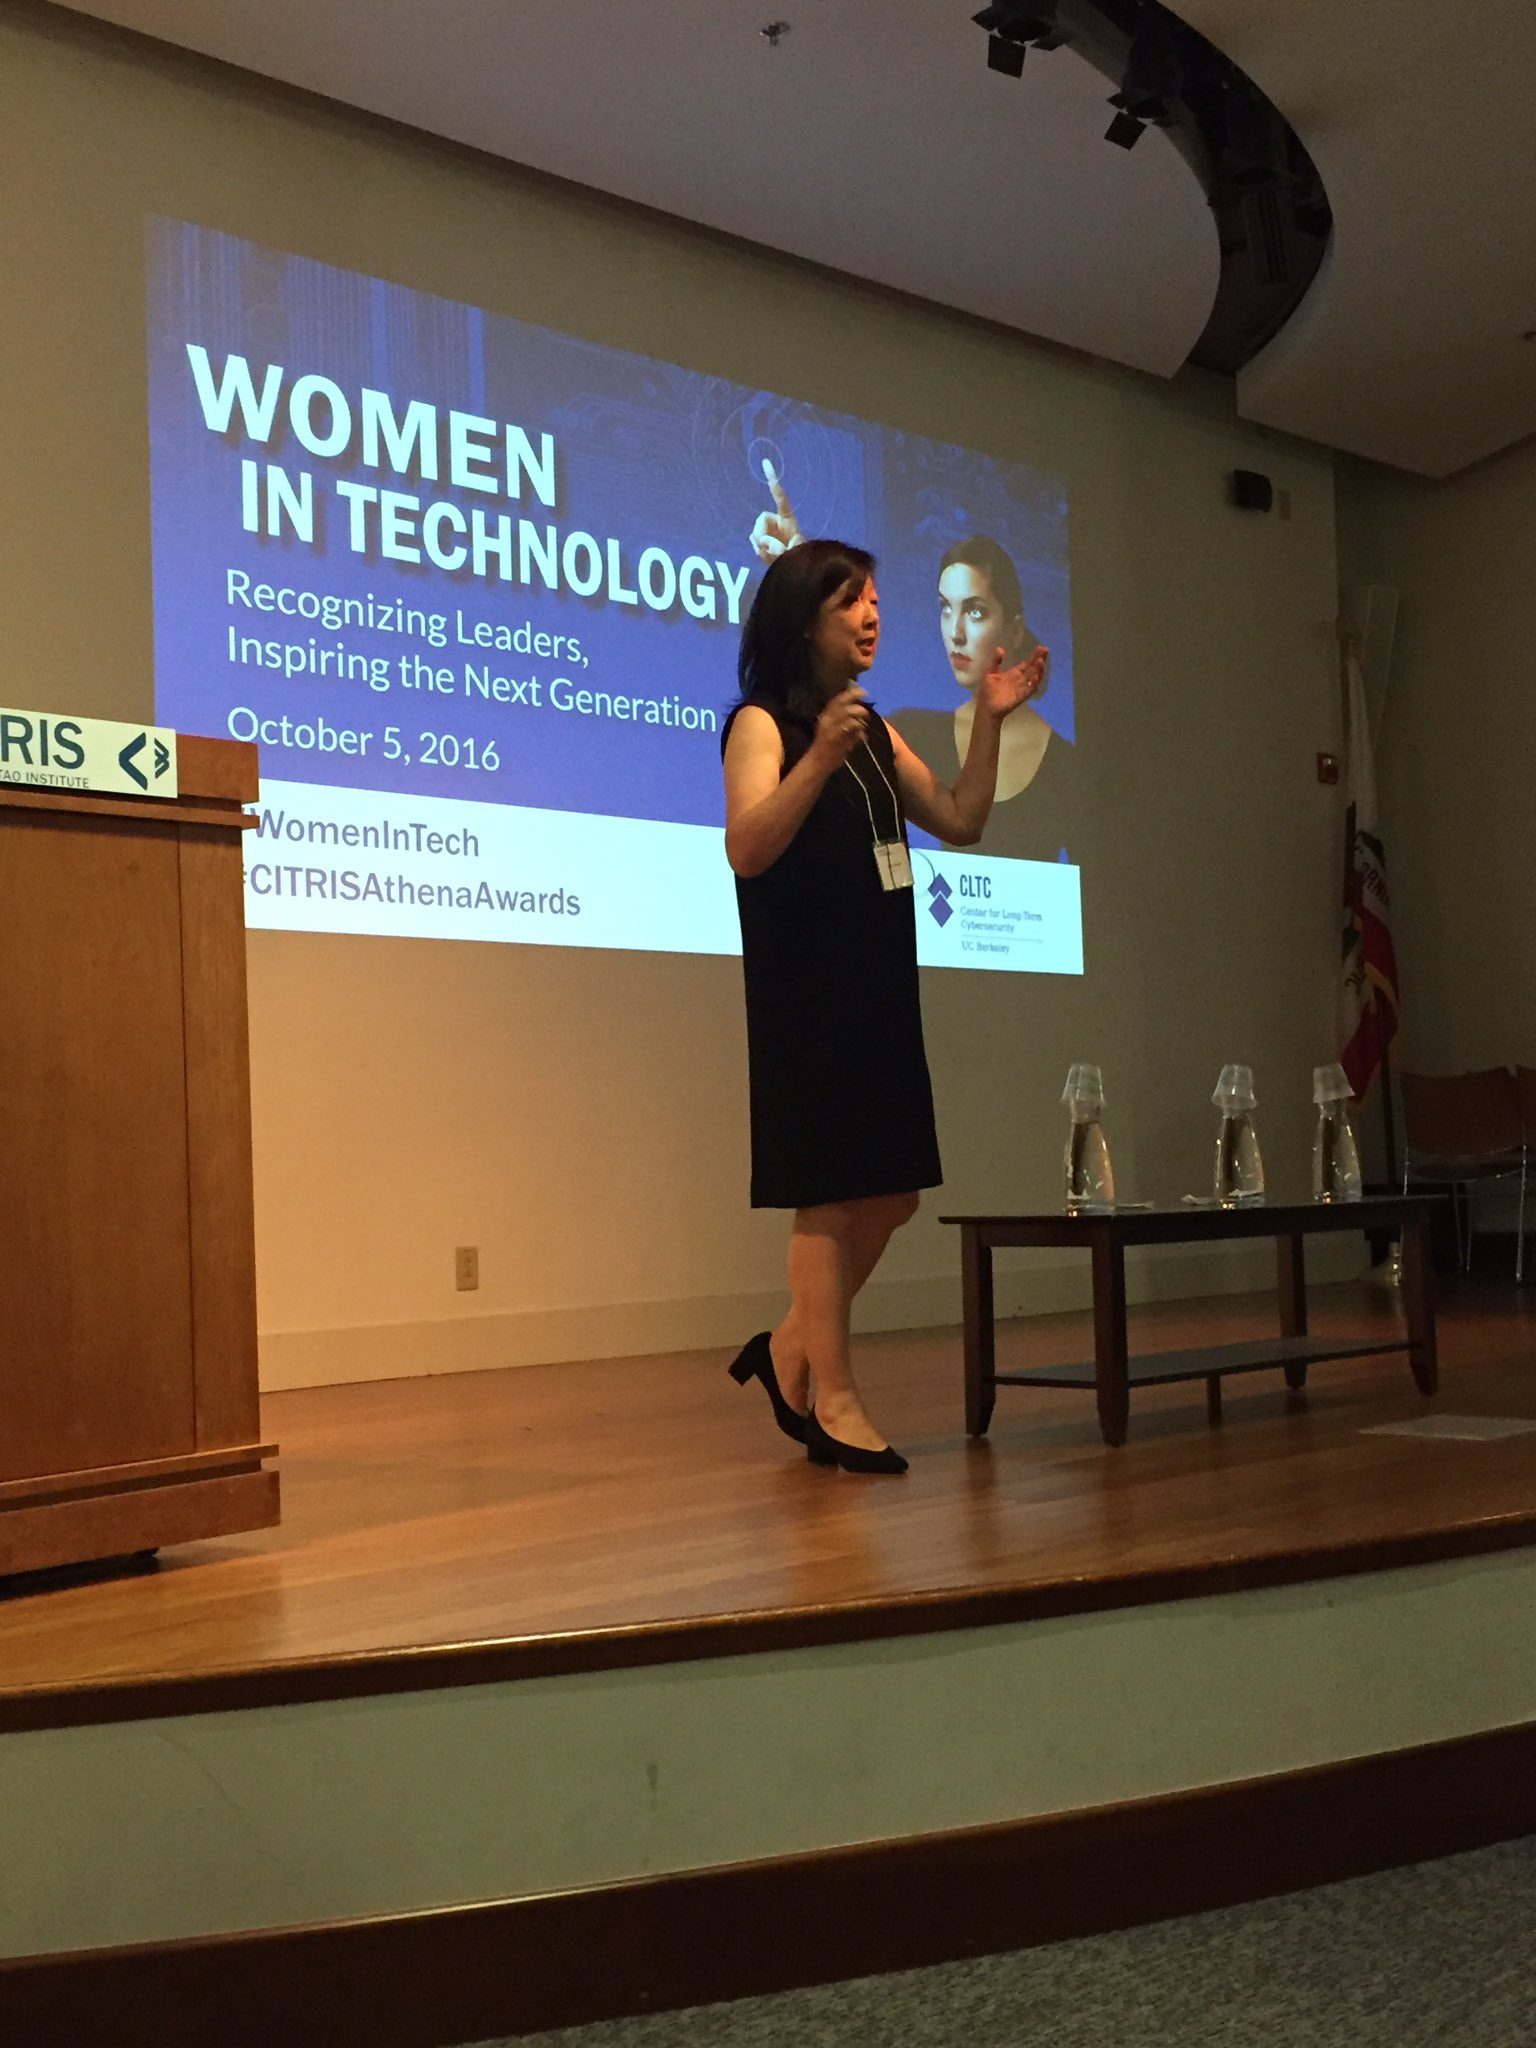 Claire Hough shares her experience as a #womenintech at Citris  @citrisnews @SkyDeck_Cal #gobears https://t.co/hi0q19FnG6